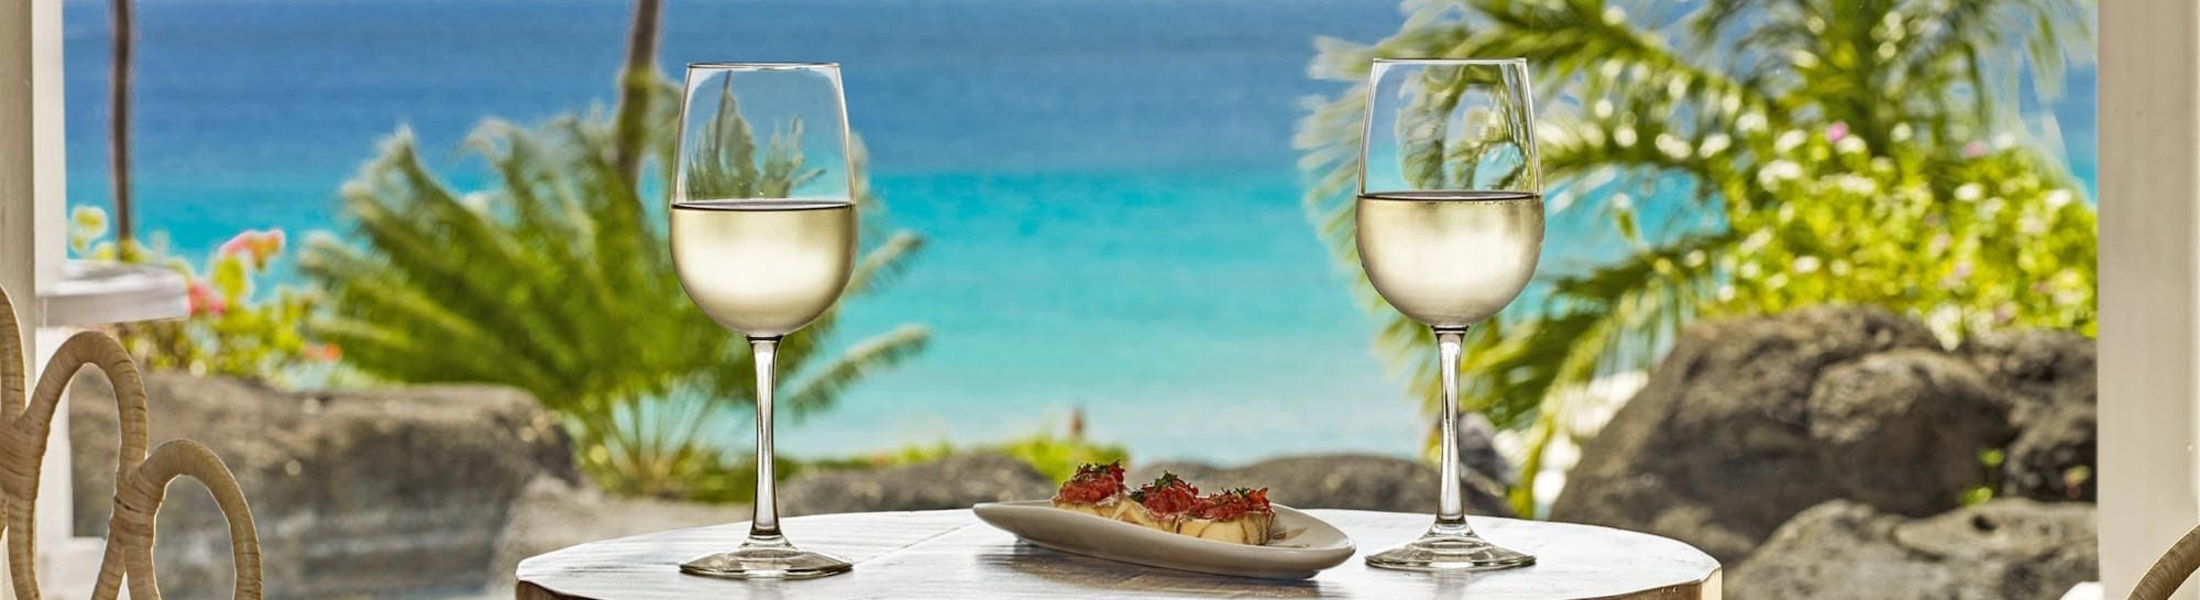 Wine glasses on a table overlooking the ocean in Barbados